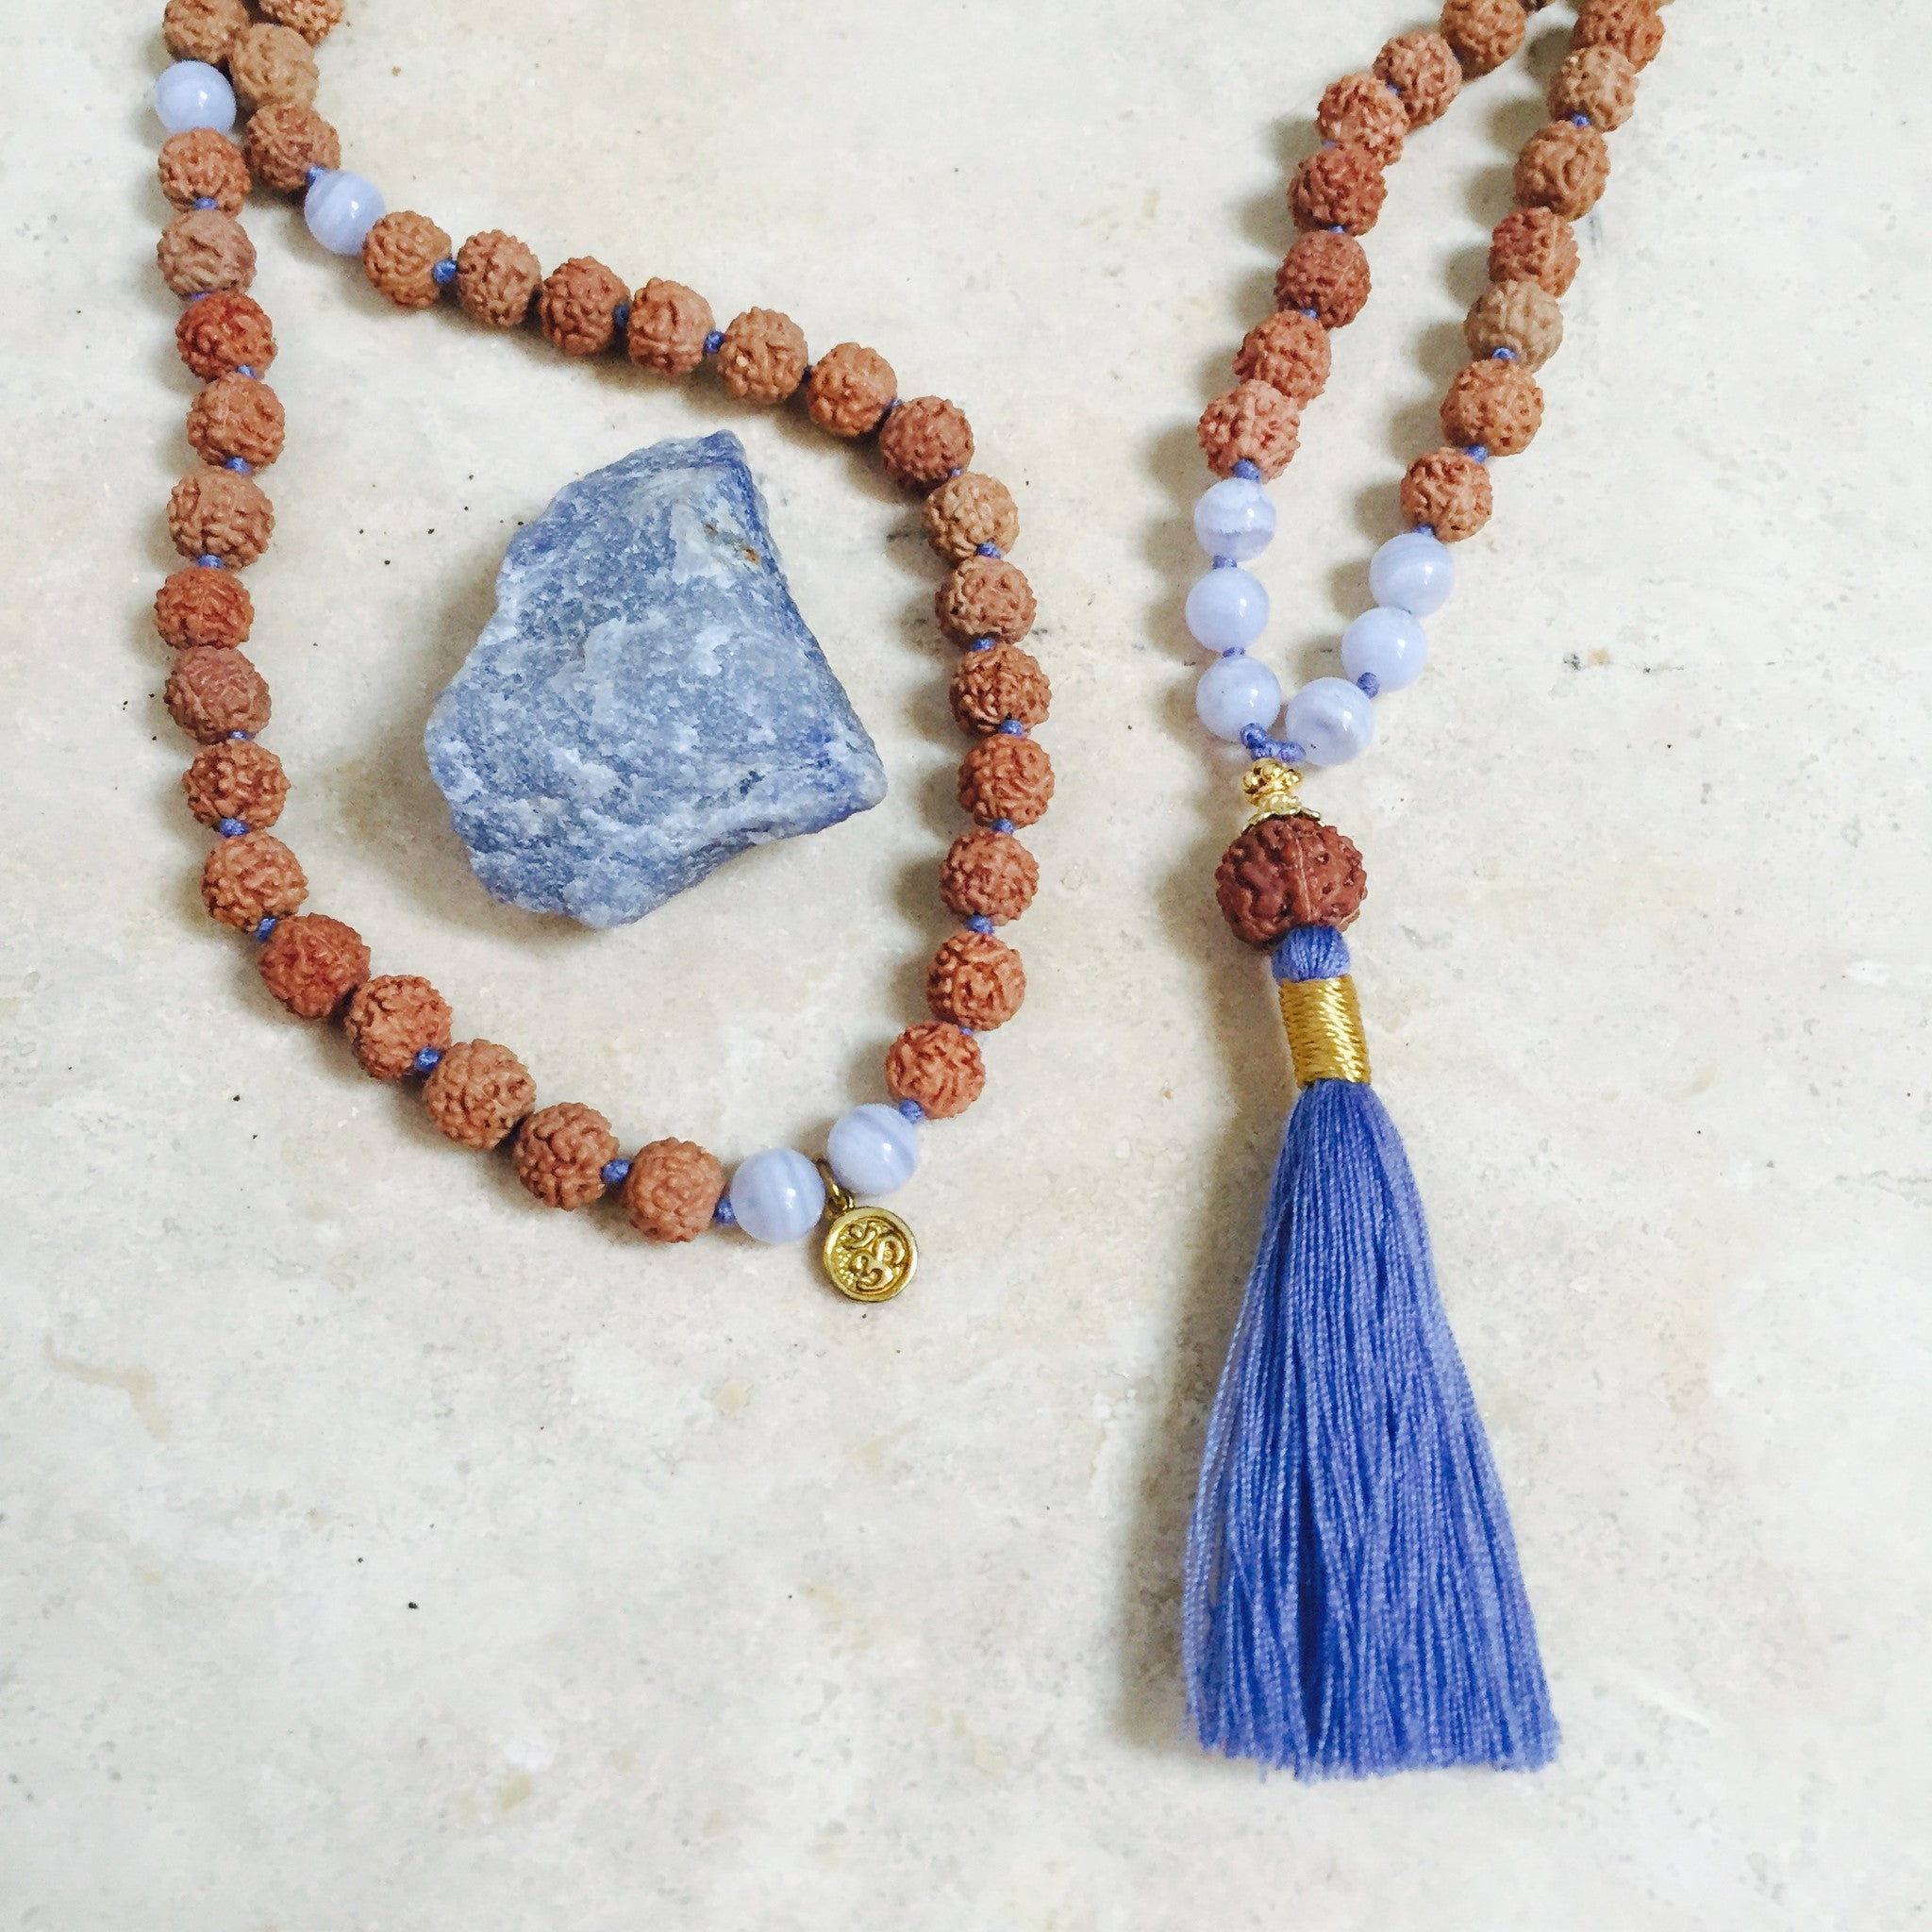 malas salt necklaces prayer male aquamarine bracelets mala mist buddhist beads jewelry morning spring